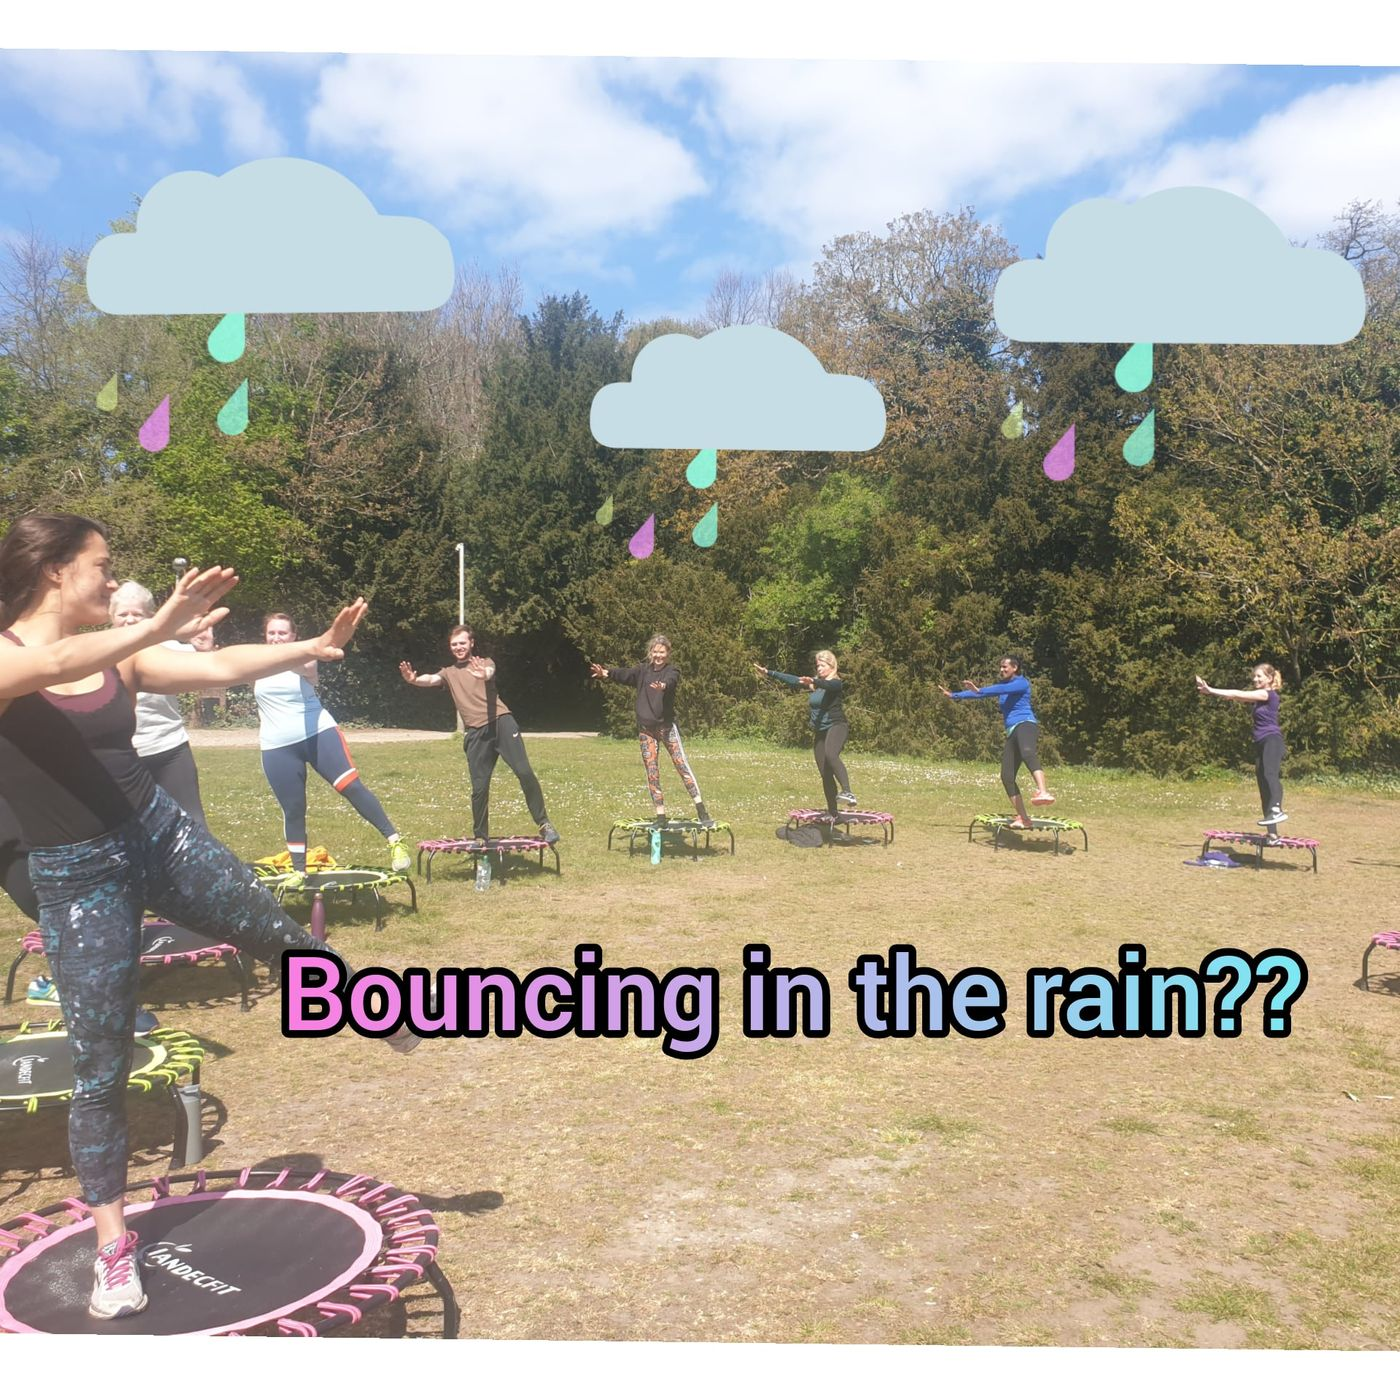 🎵 Bouncing in the rain, we're bouncing in the rain 🎵 Rain won't be stopping play this Sunday... we will be hiding under the bridge by Crystal Palace Sports Centre for both [Bouncing](/classes/944heN3Sikqy) classes. See you under there! 🤸♀️🥳